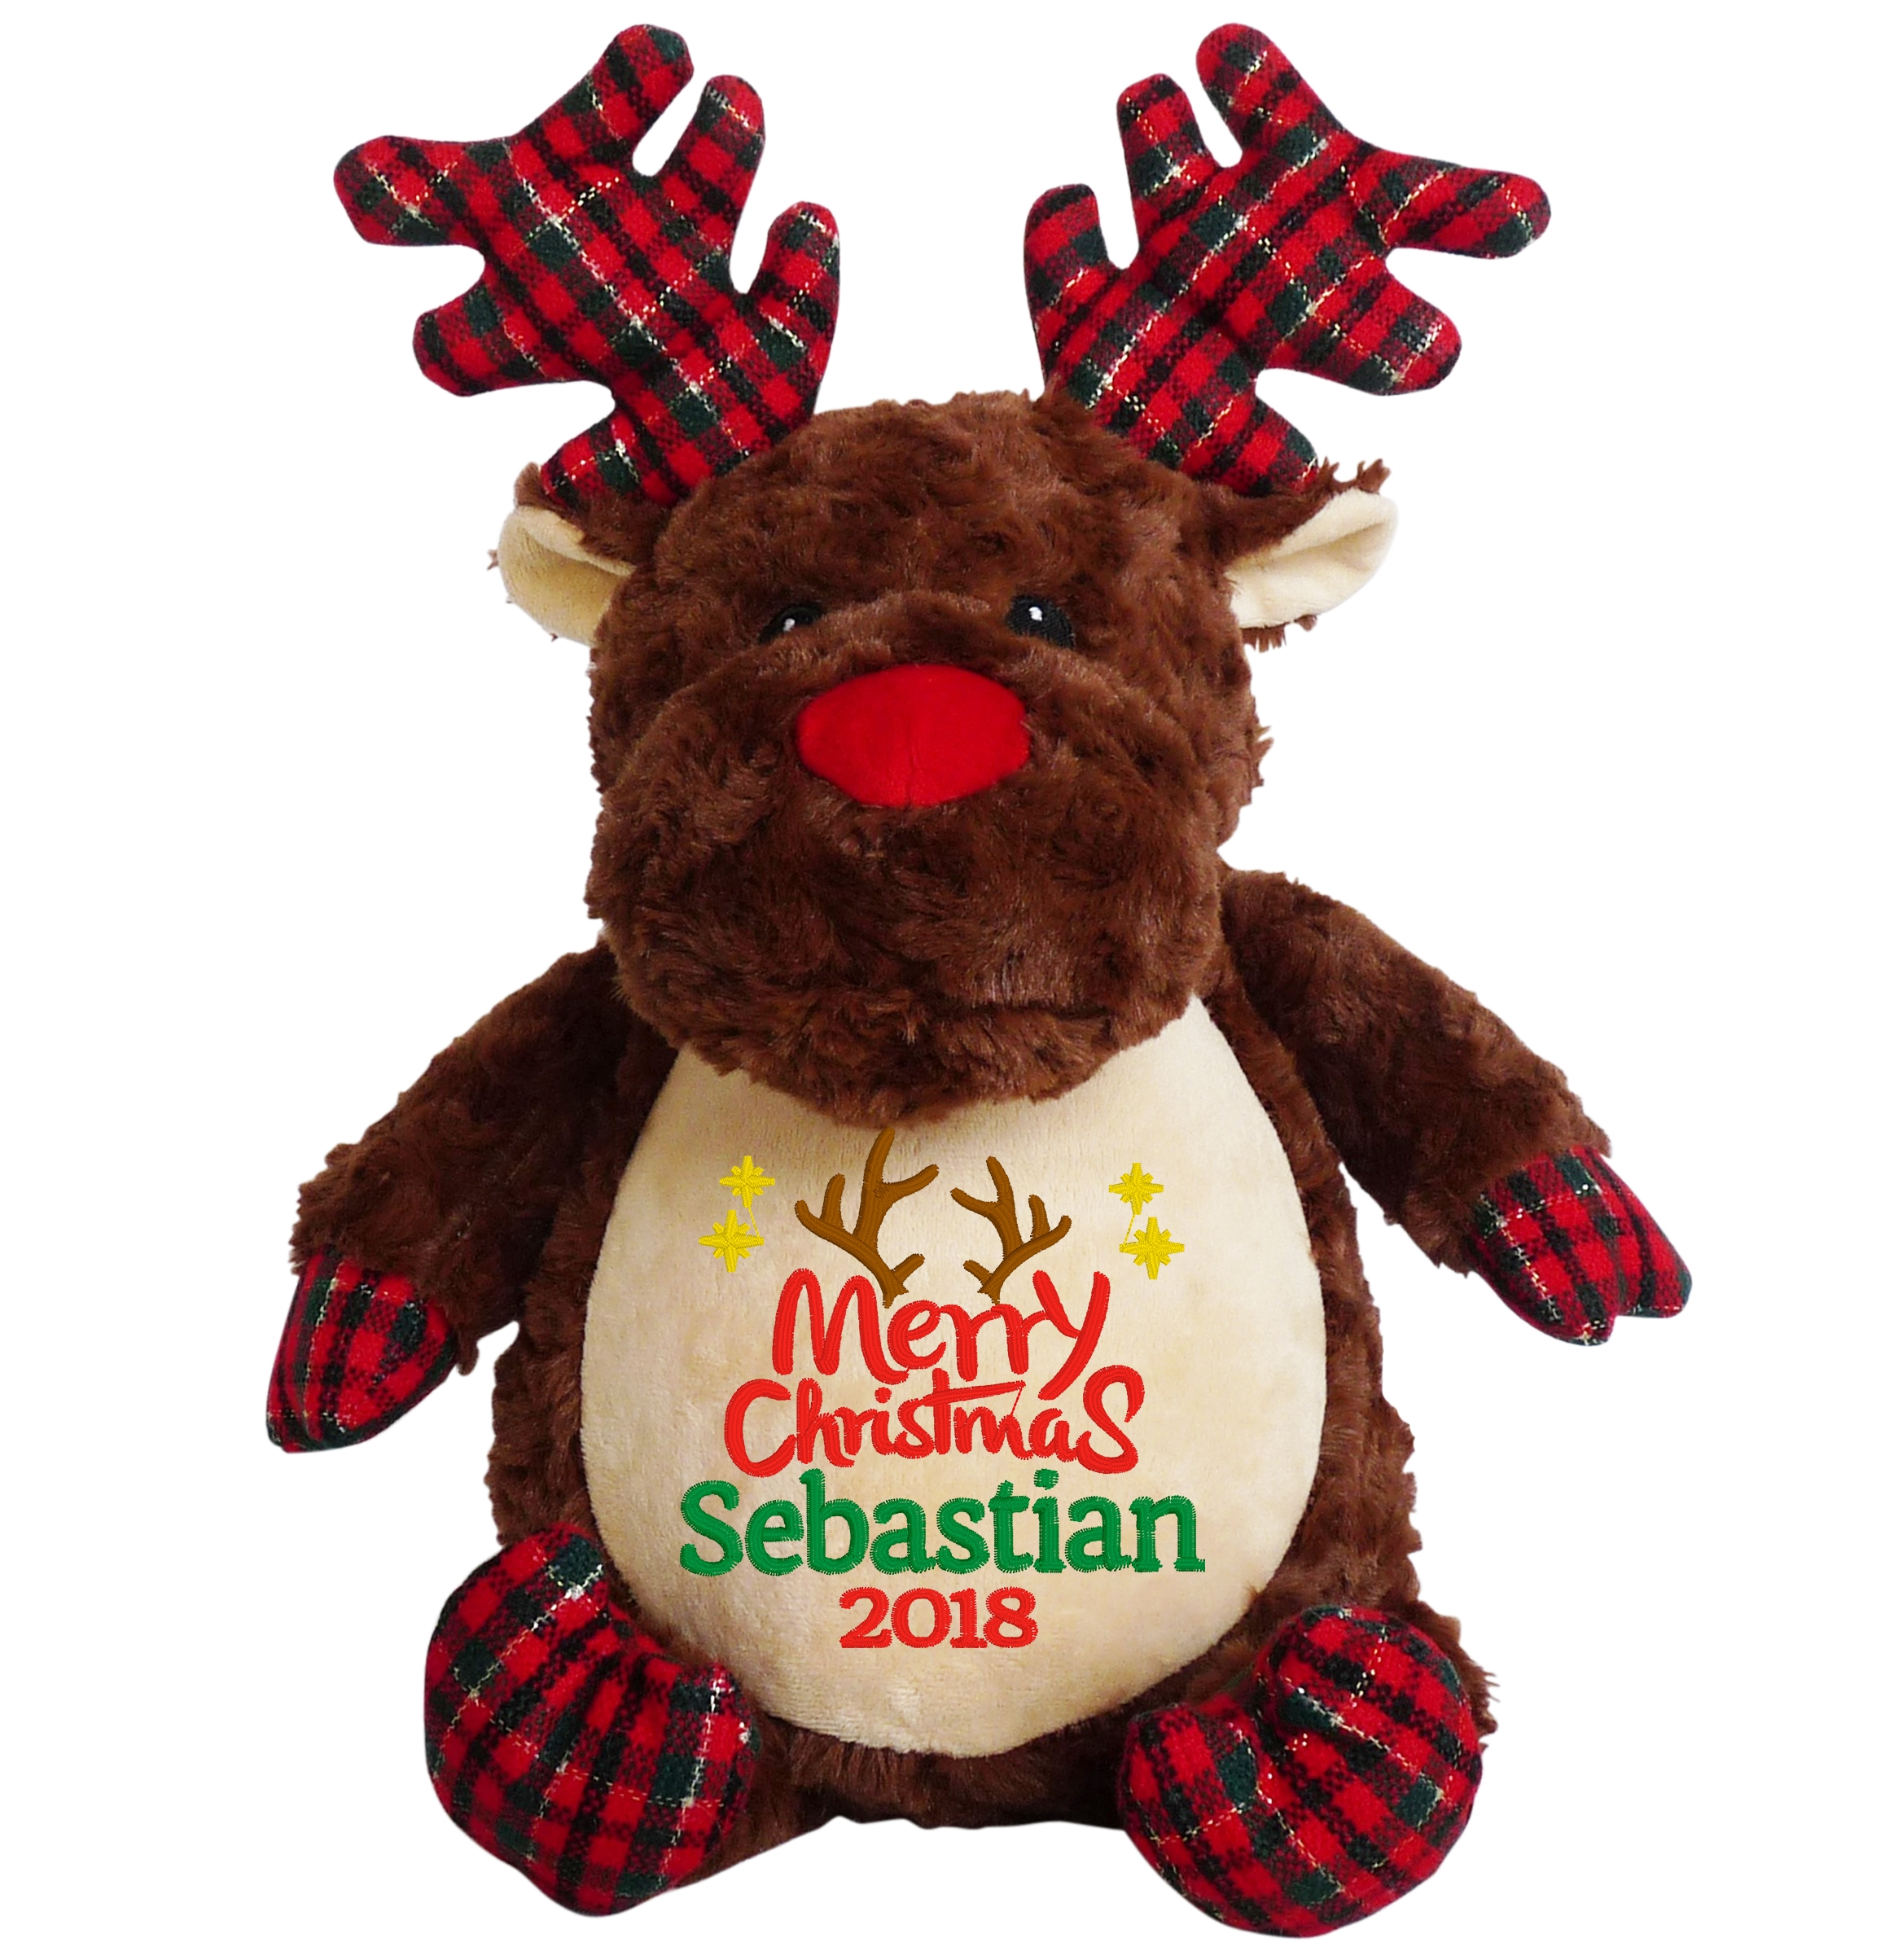 This+is+an+image+of+a+Reindeer+Teddy+Personalised+Christmas+Gift+from+My+Teddy